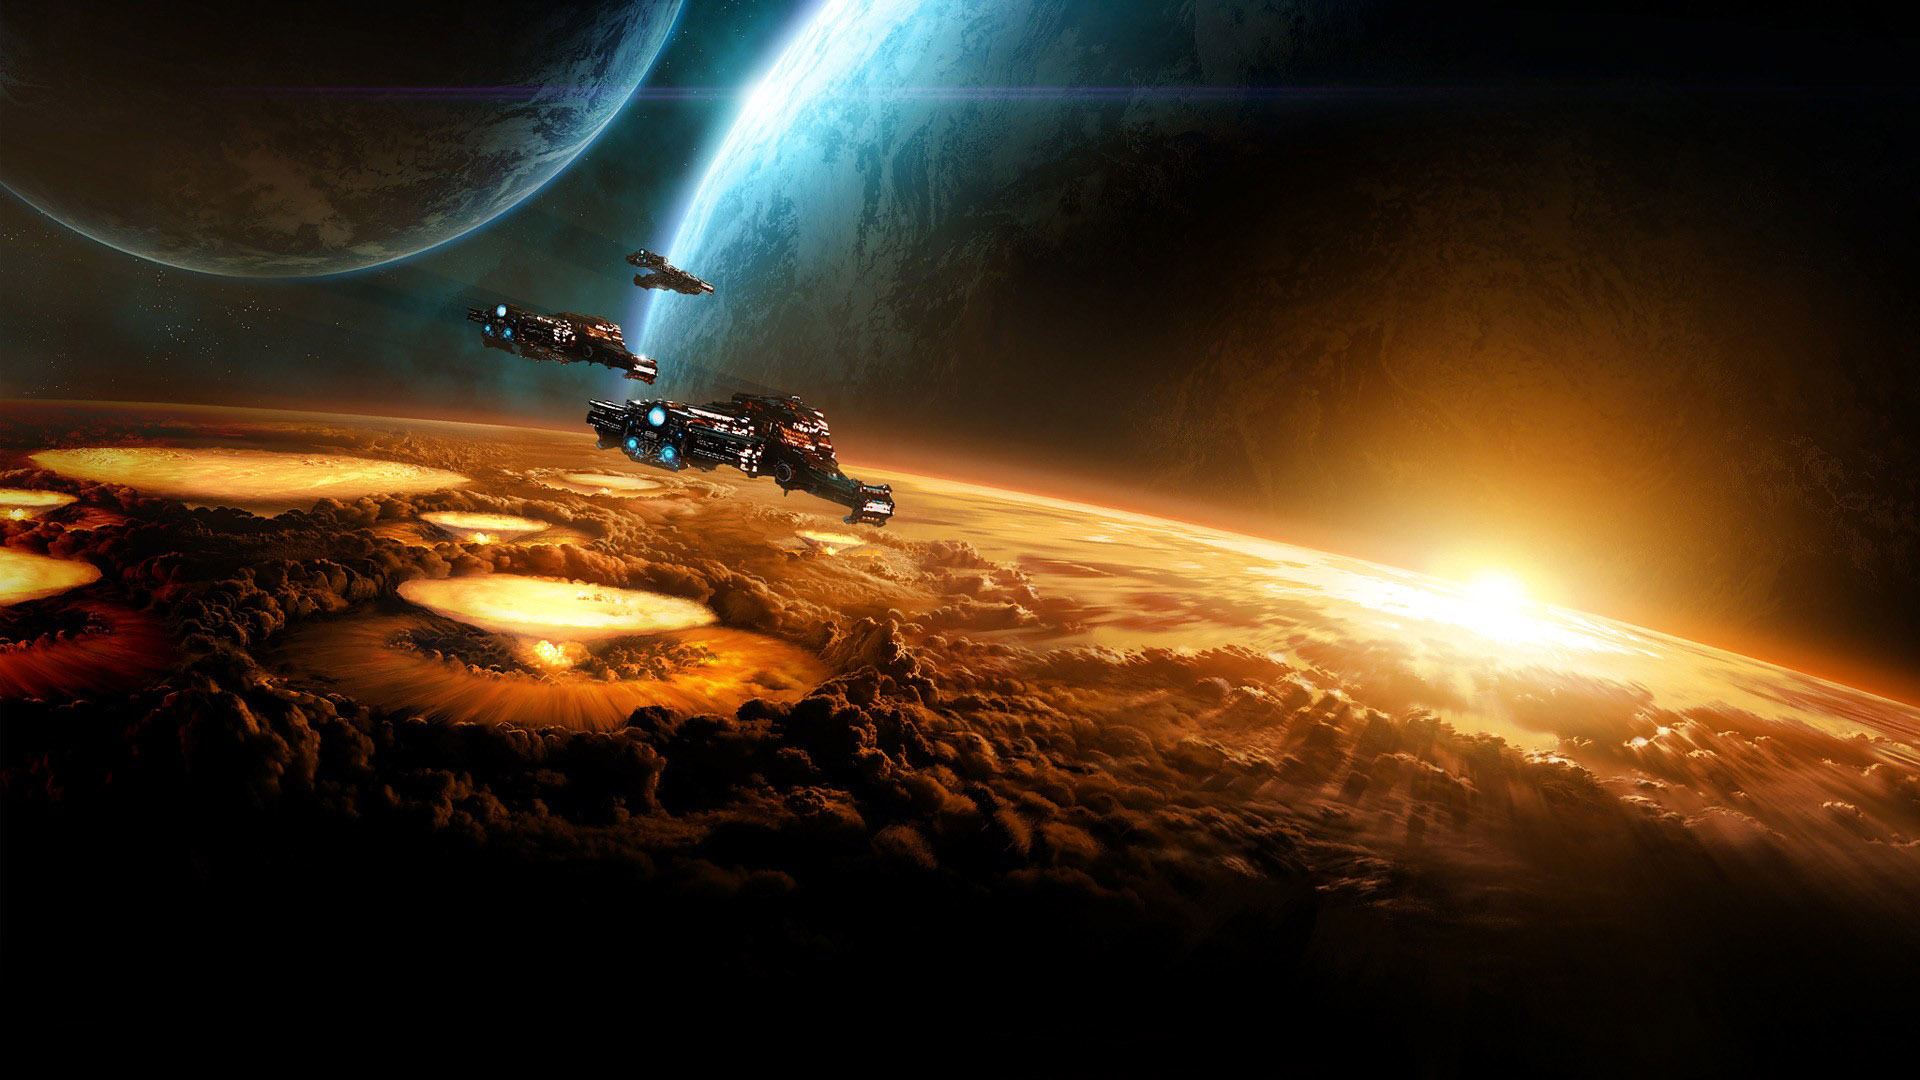 Starcraft wallpapers best wallpapers for In wallpaper